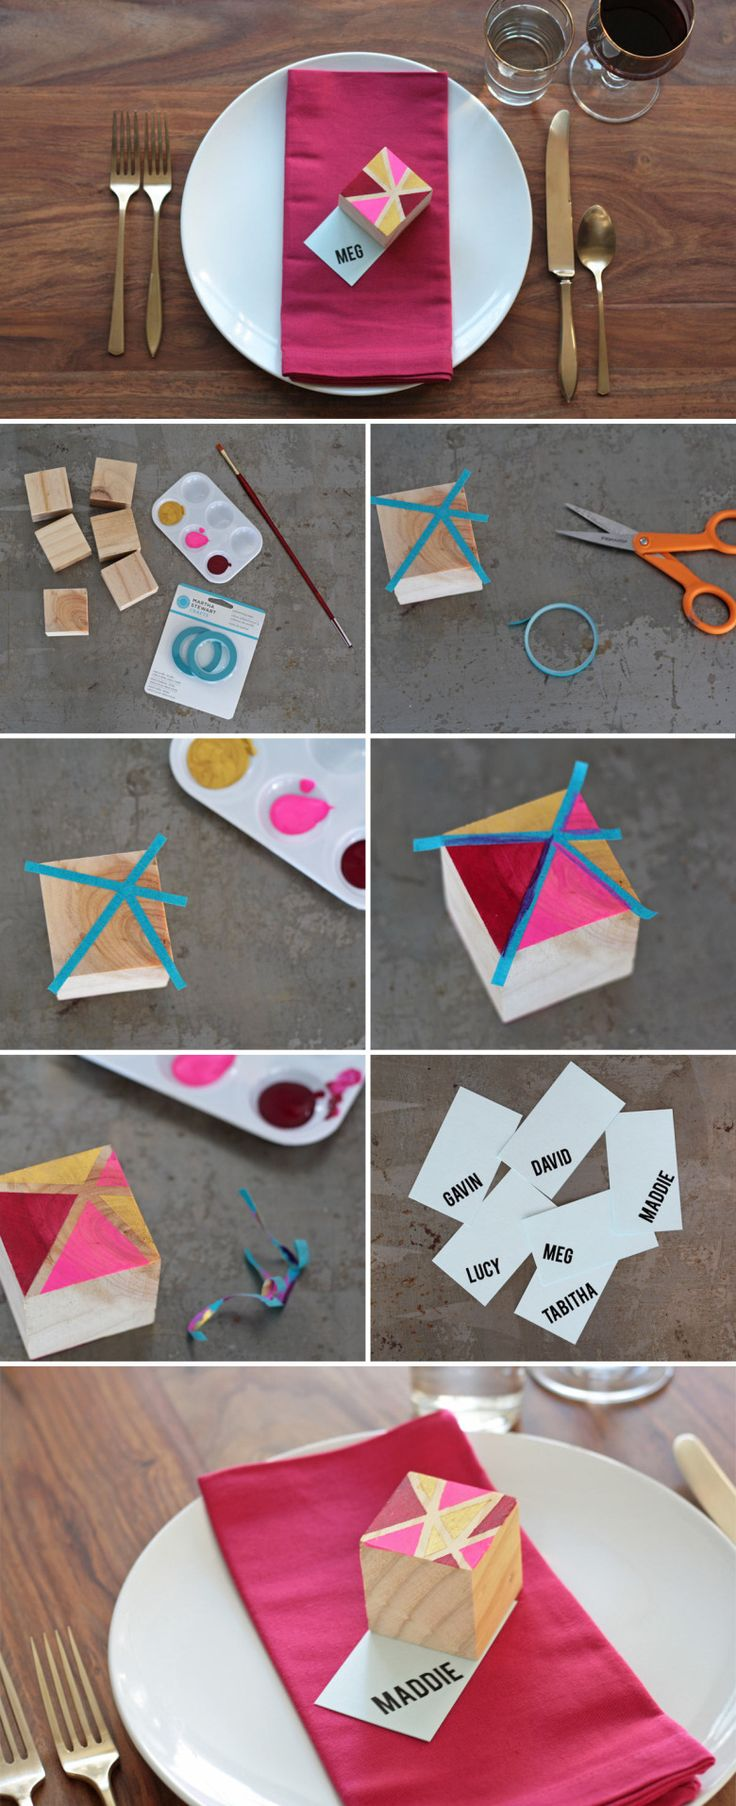 How To DIY Geometric Block Place Card Settings A Practical Wedding: Blog Ideas for the Modern Wedding, Plus Marriage